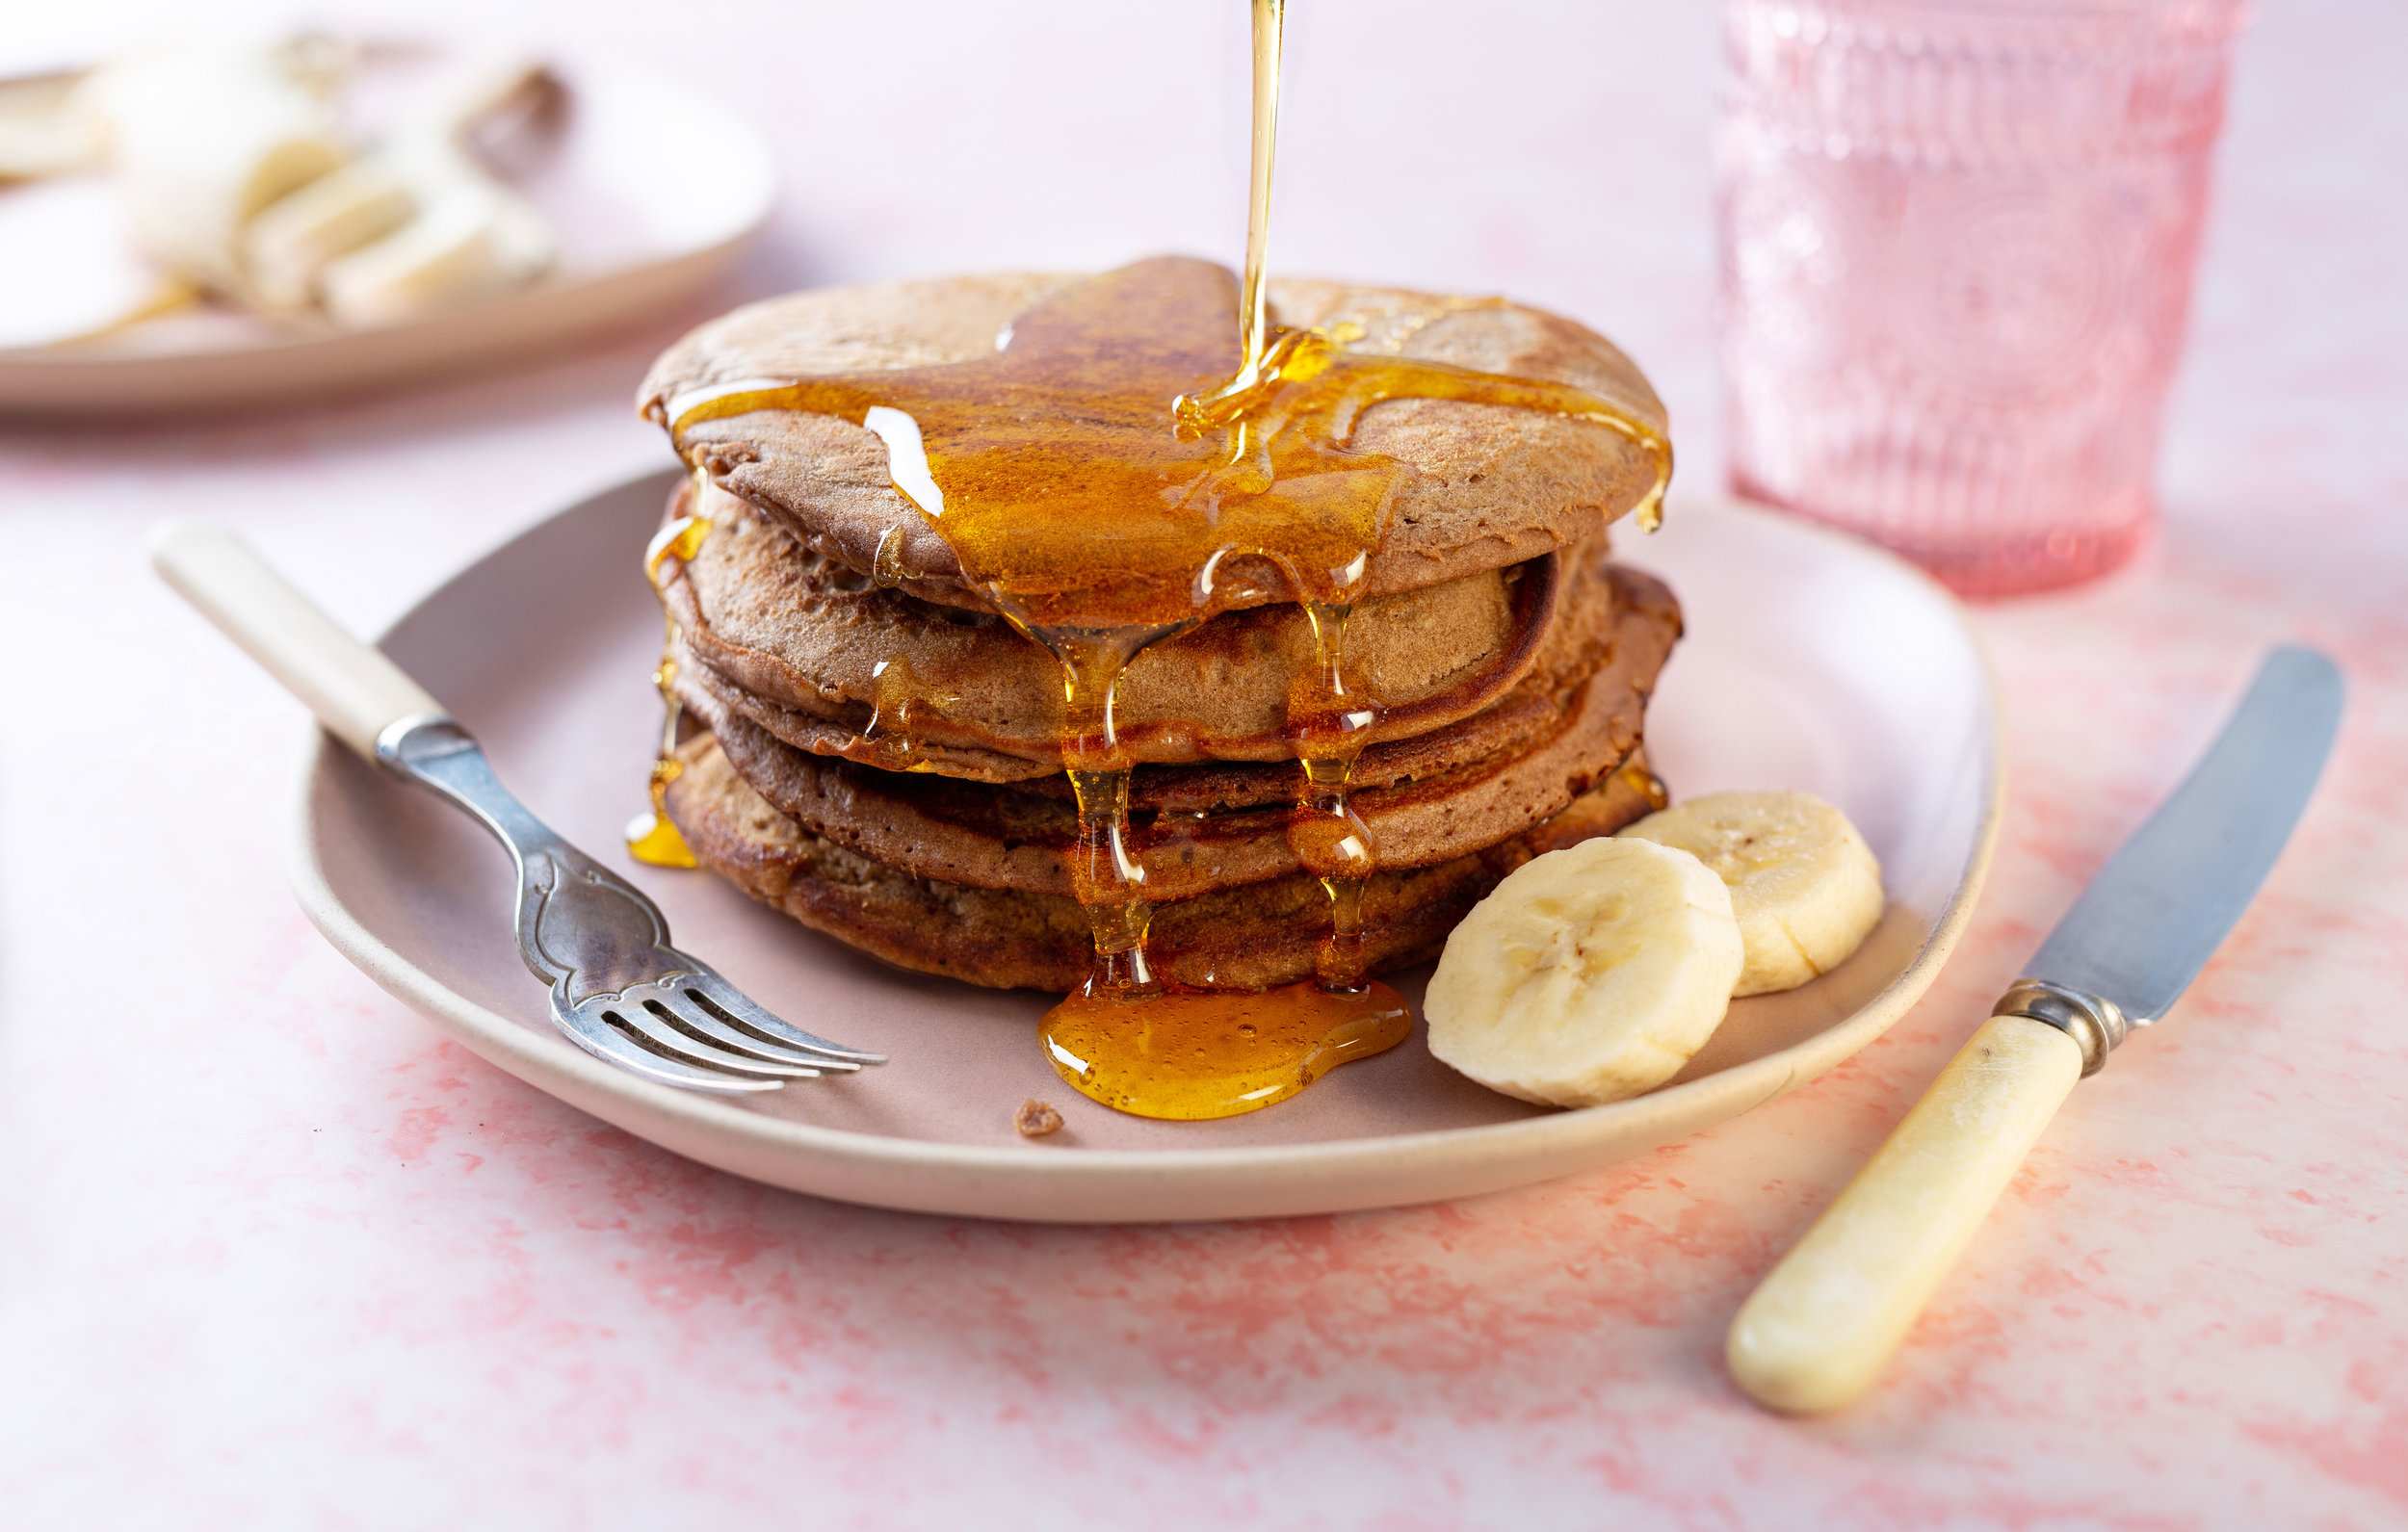 Pancakes-and-syrup.jpg